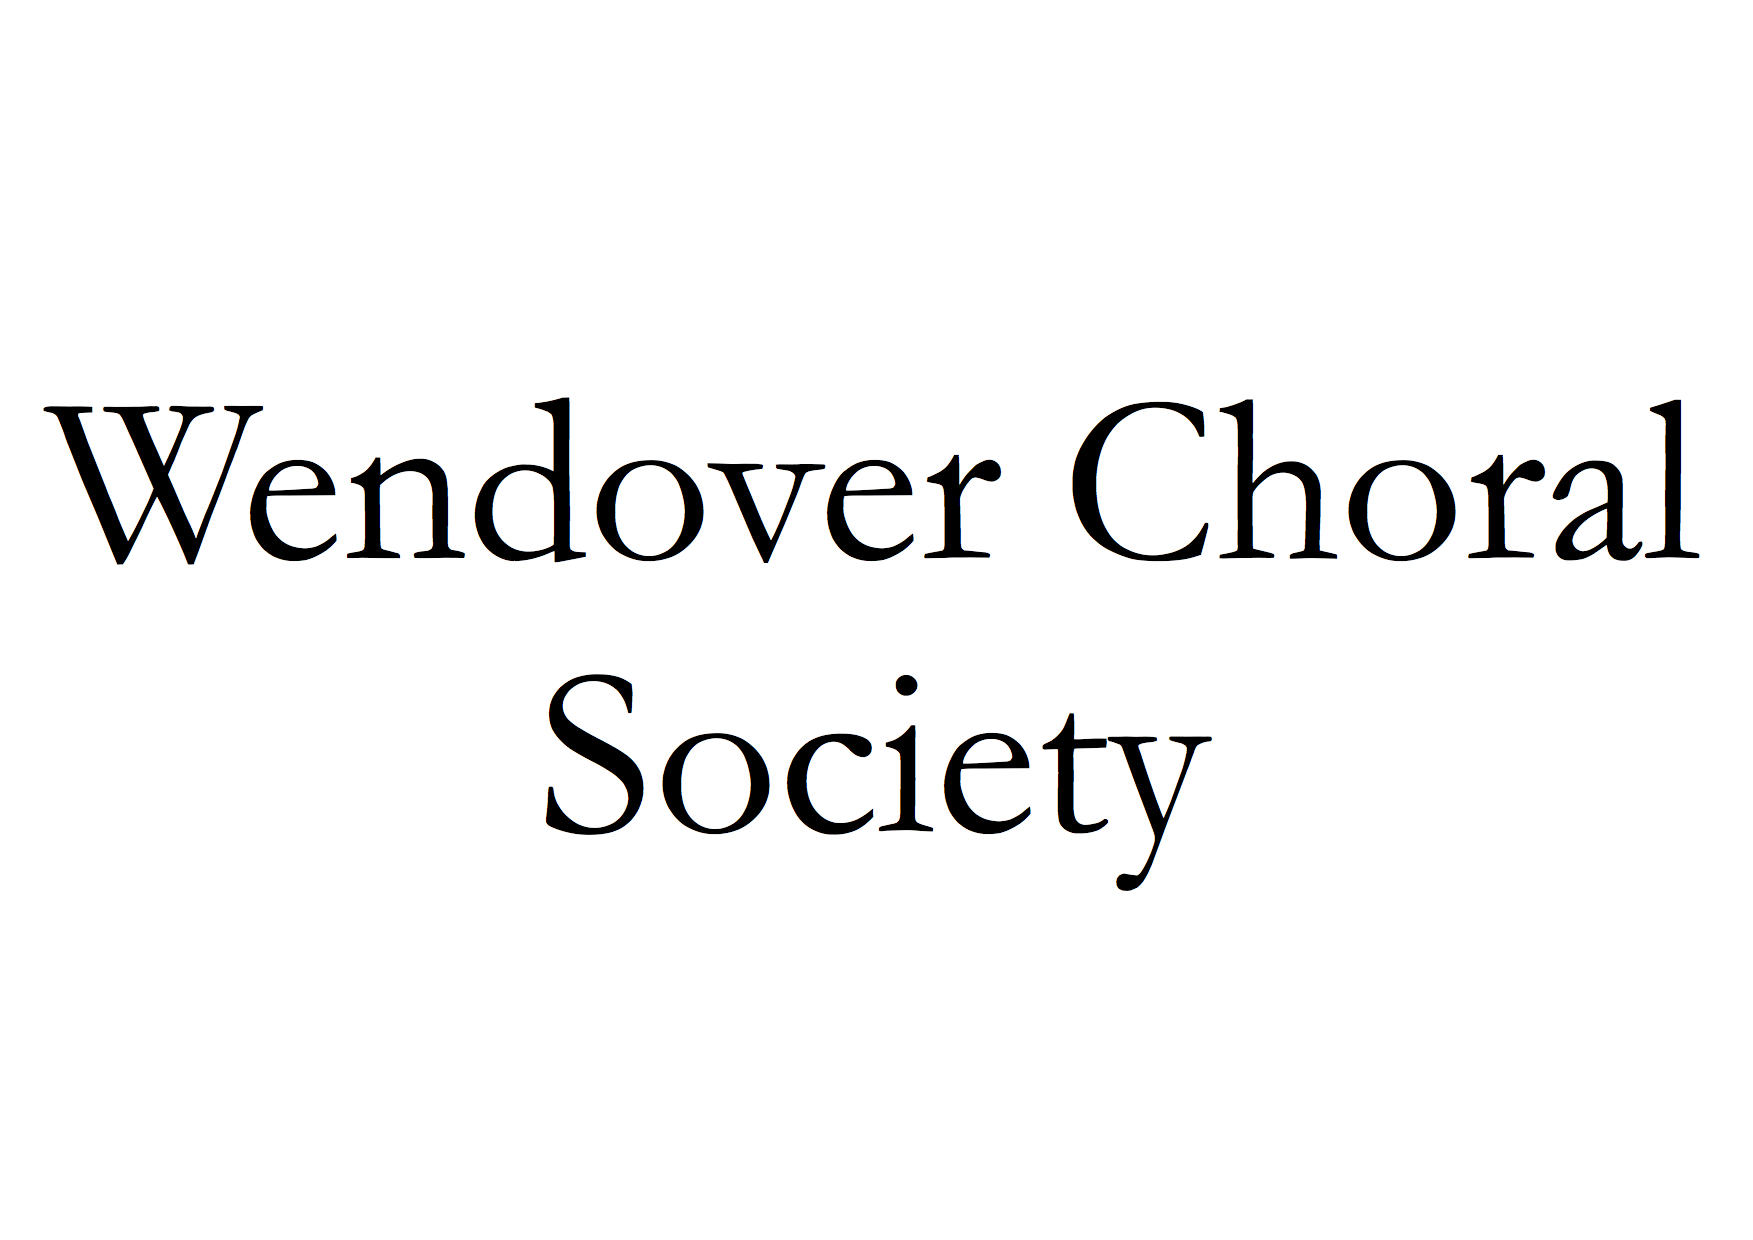 Wendover Choral Society